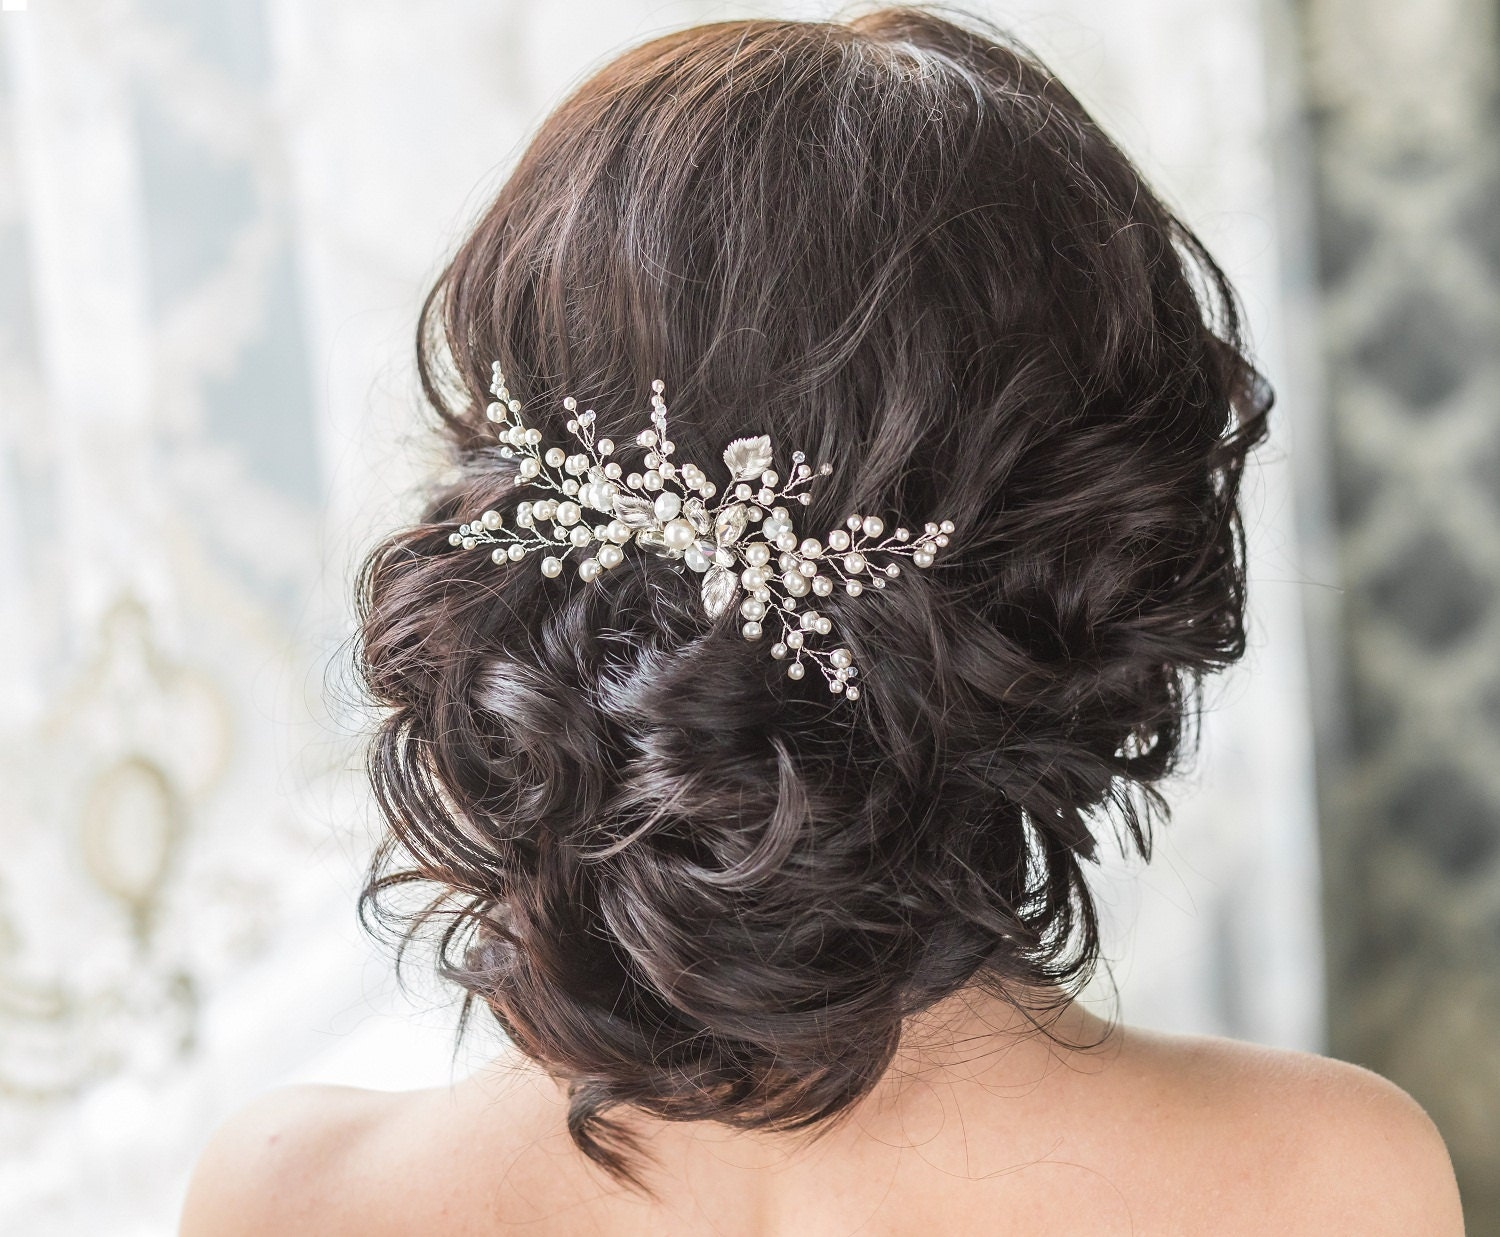 Beautiful Wedding Hairstyle For Long Hair Perfect For Any: Bridal Hair Comb With Swarovski Pearls Bridal Headpiece Bridal